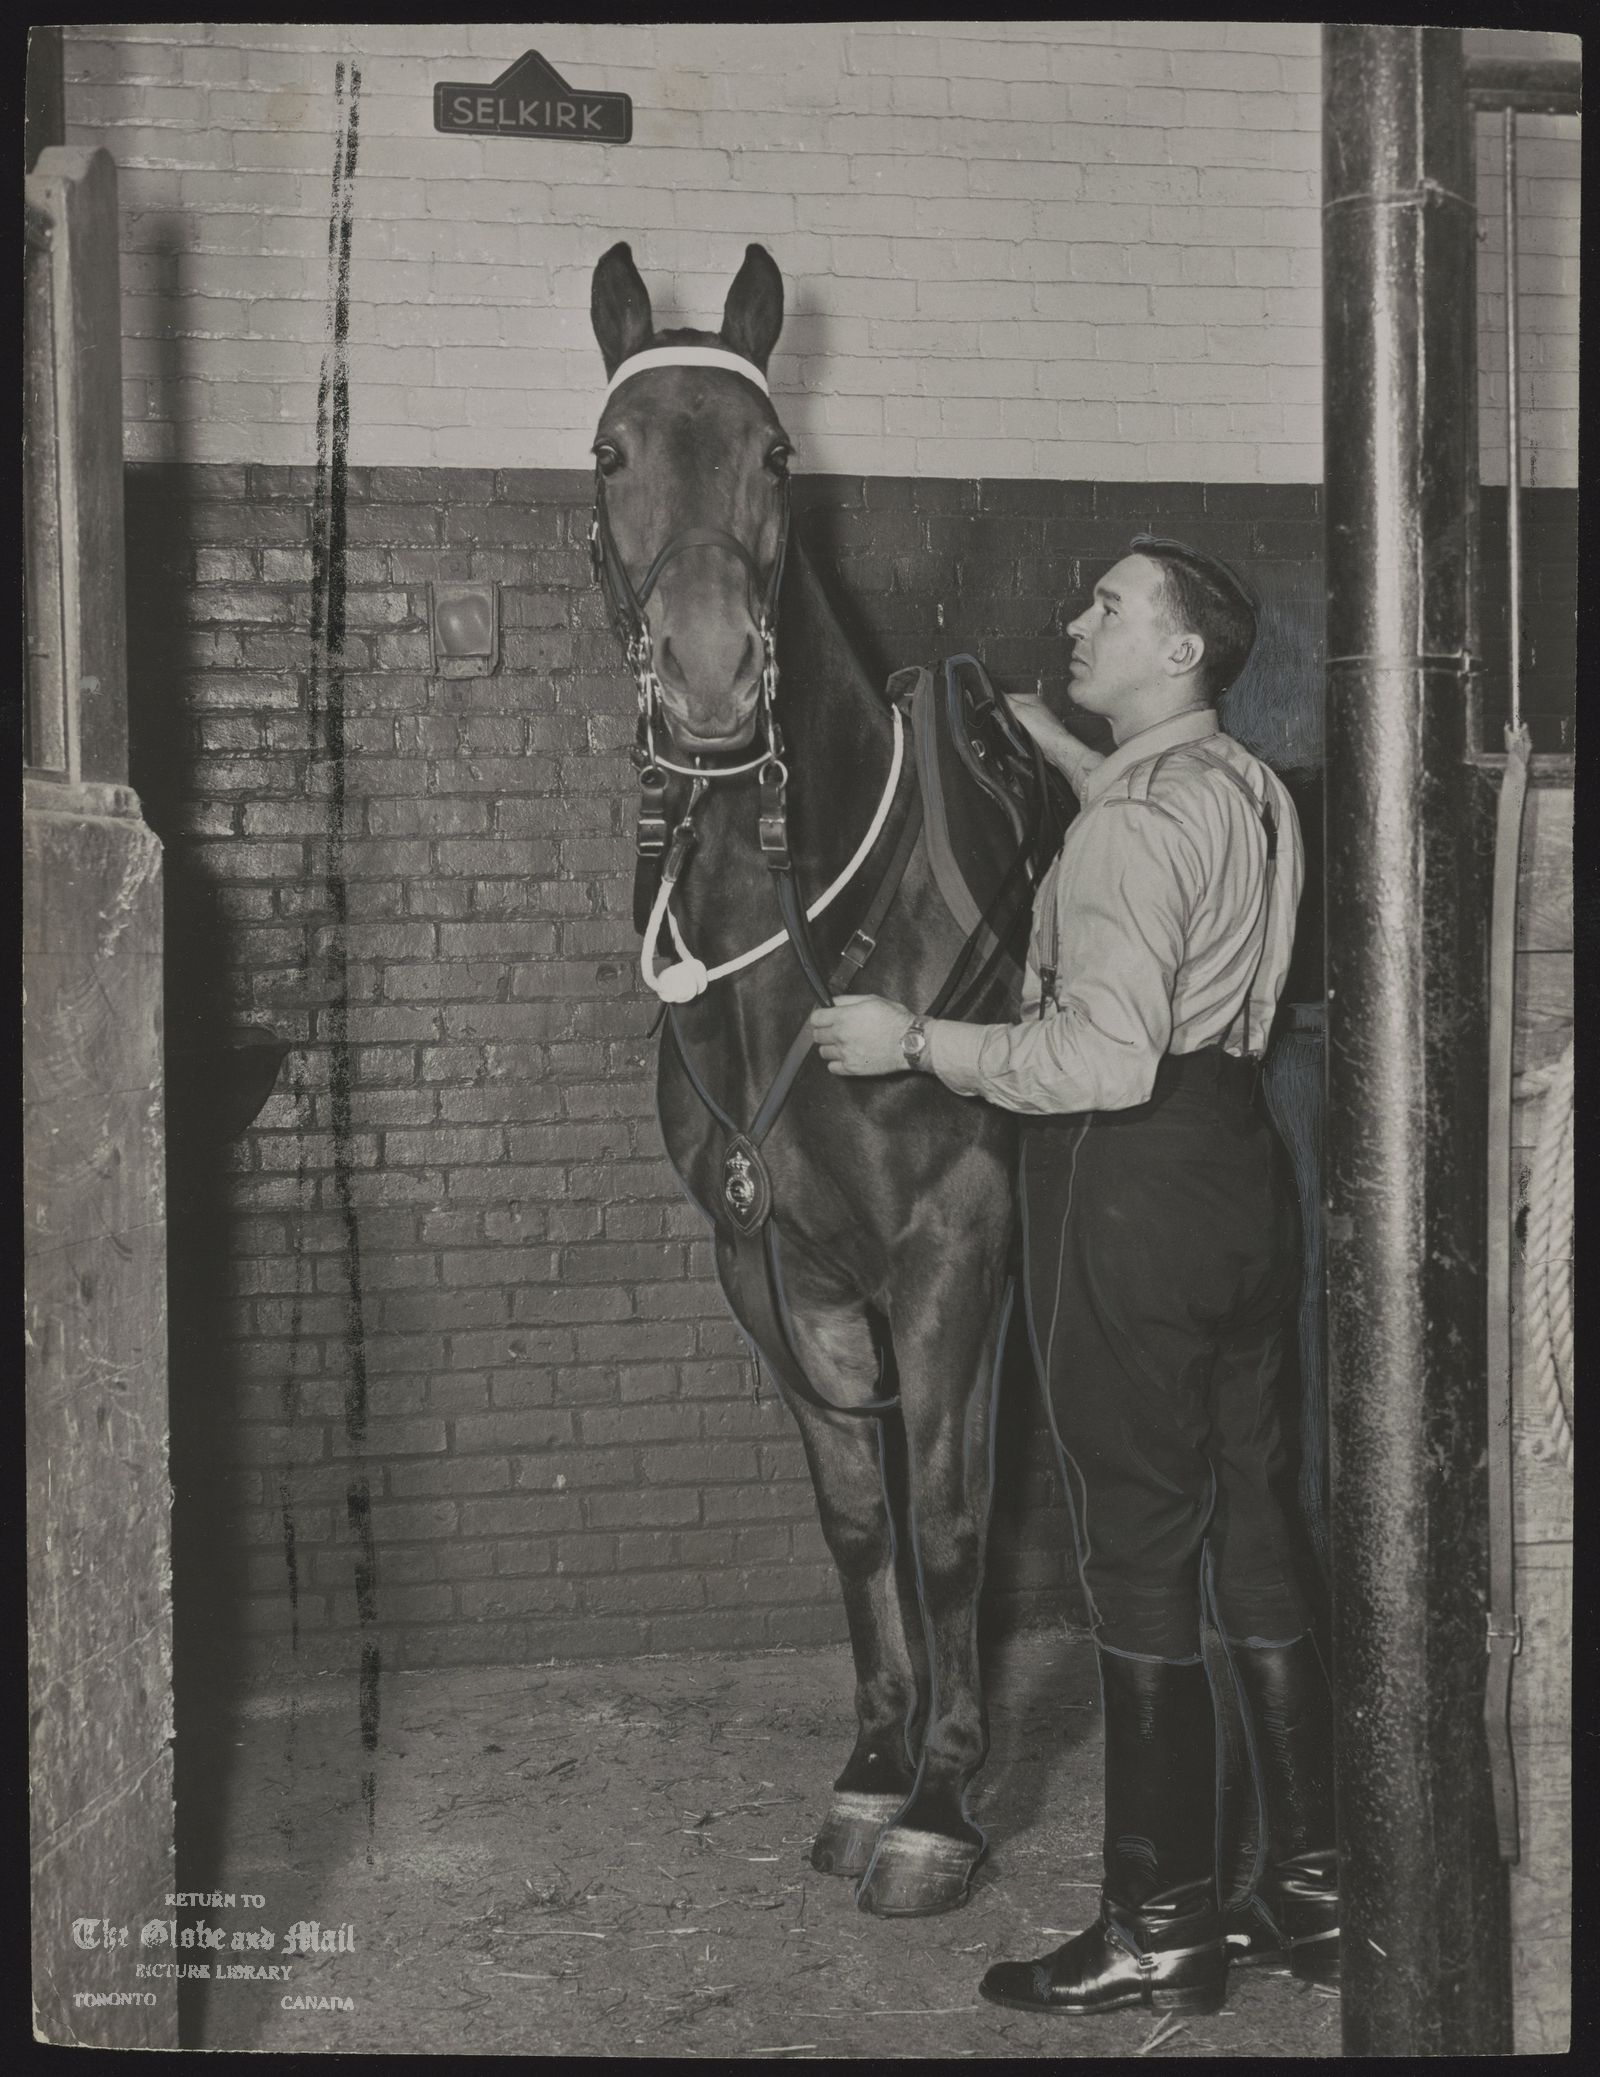 The notes transcribed from the back of this photograph are as follows: Constable Moody puts the bridle on his mount before going out on patrol. Mounted officers perform duties that no car or motorcycle could handle.